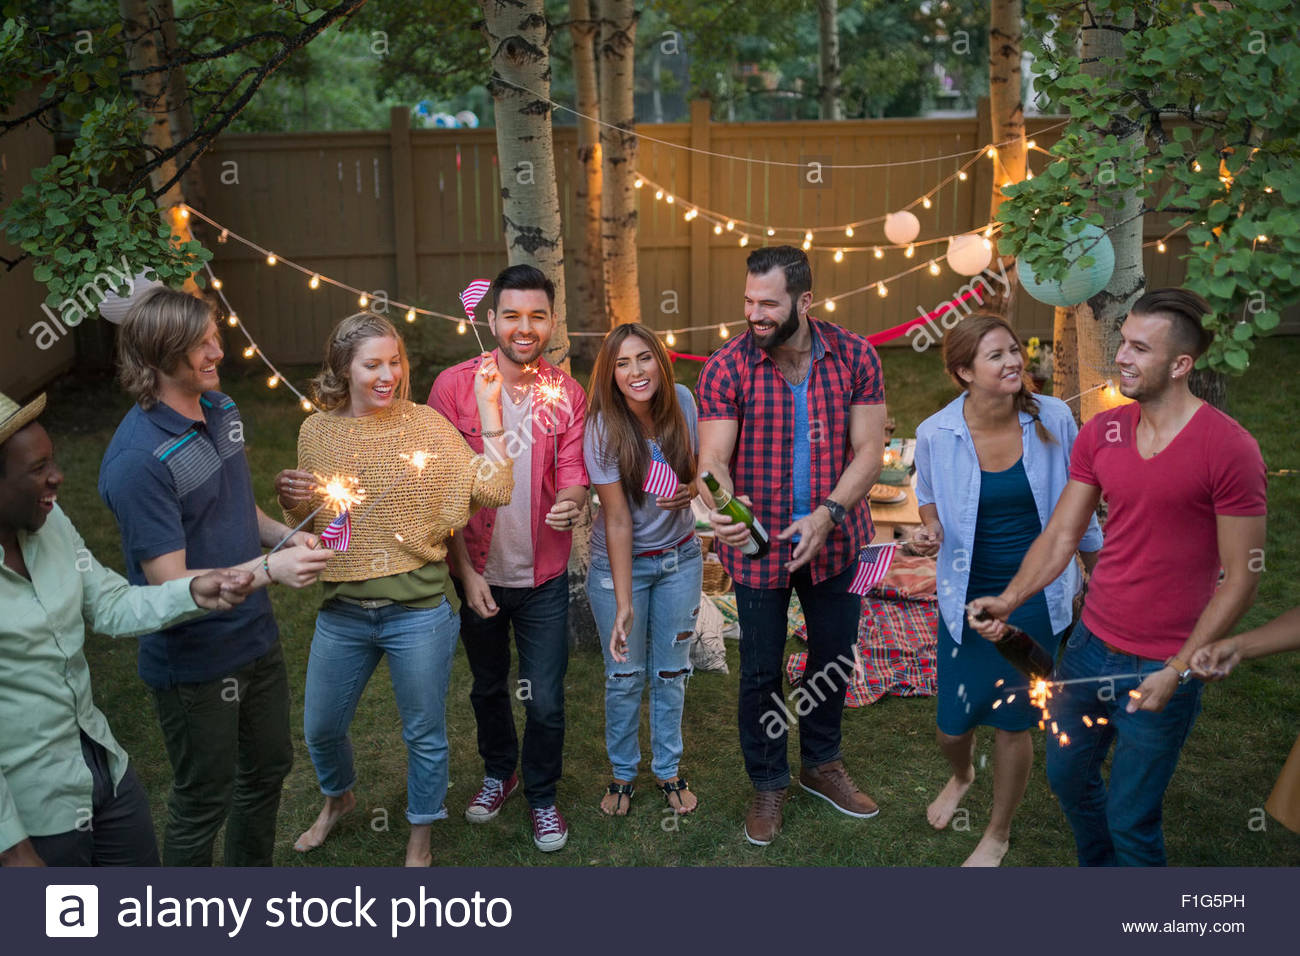 Friends with sparklers at backyard party - Stock Image